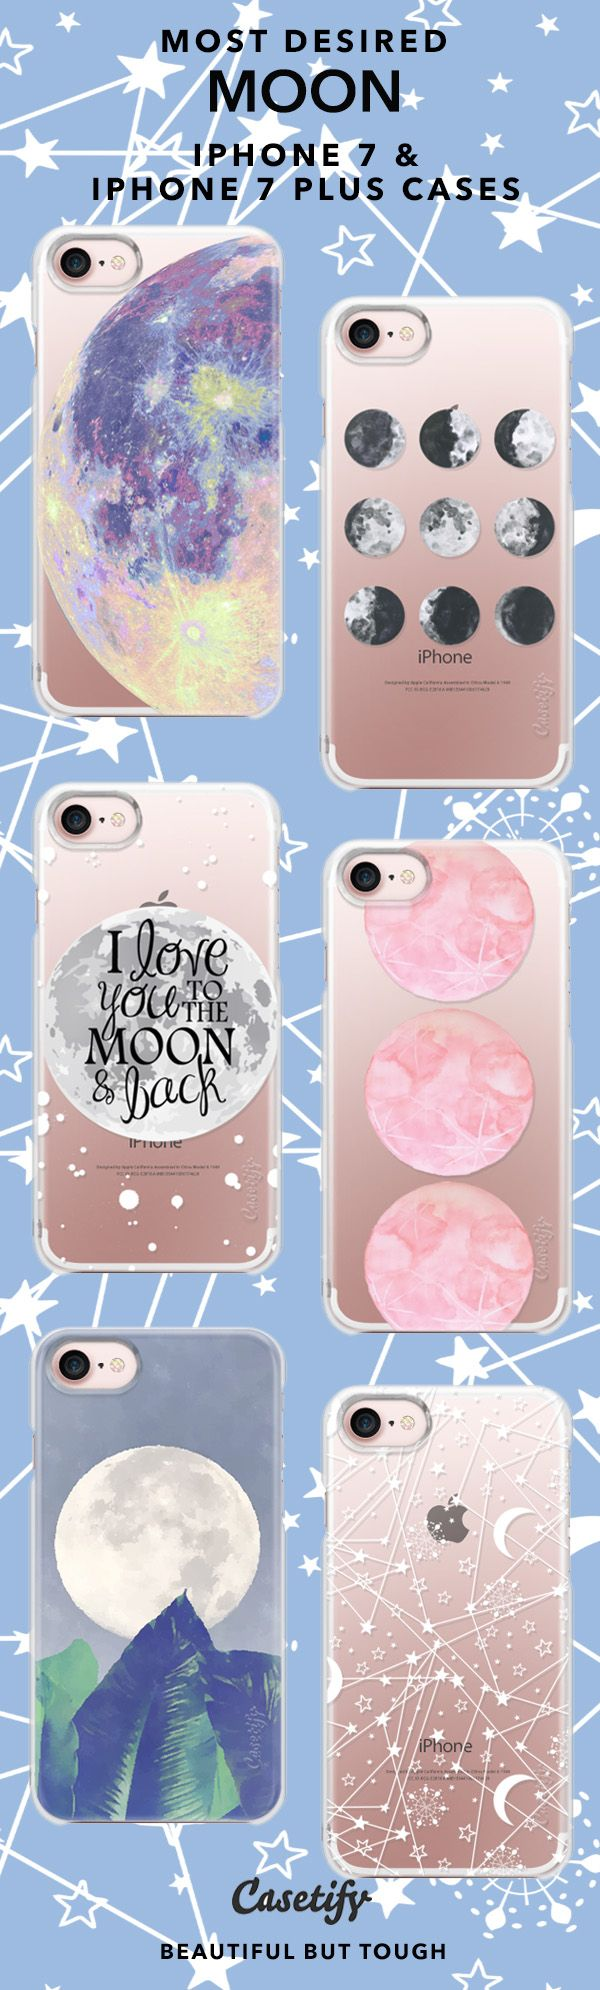 """The Sun sees your body, the Moon sees your soul."" - Anonymous 